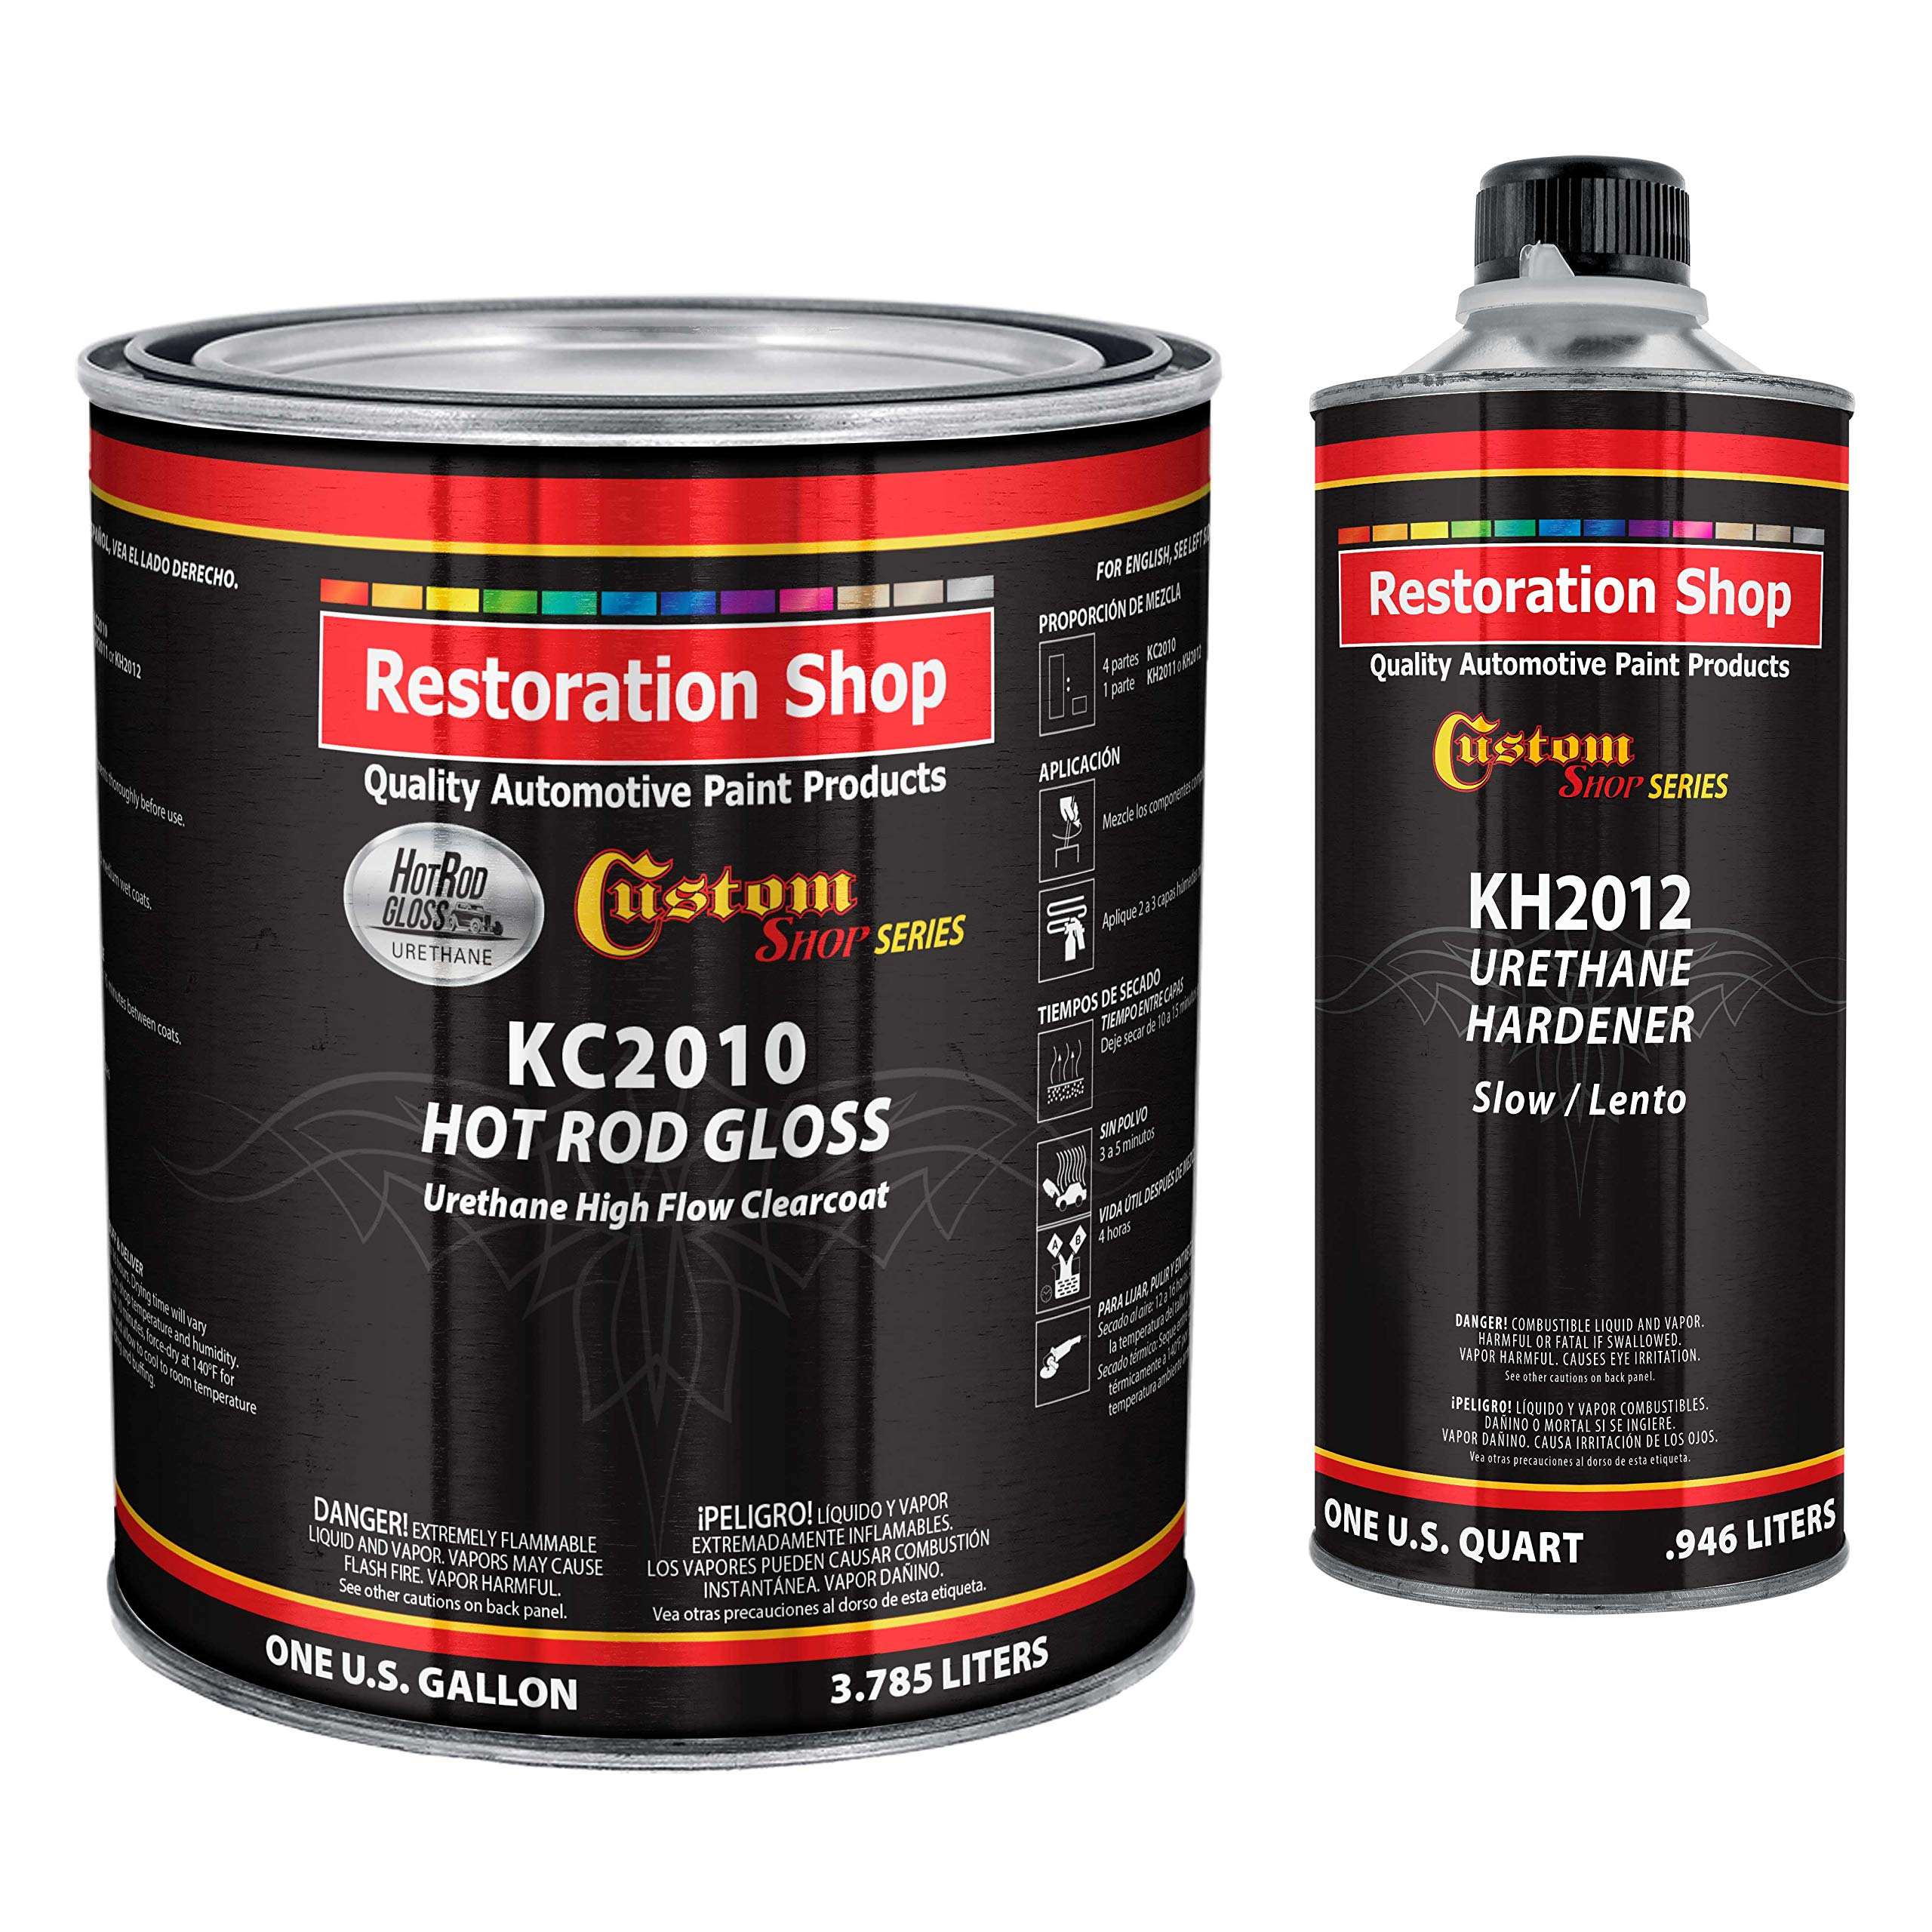 Custom Shop Complete Kit - Hot Rod Gloss Urethane High Flow Clearcoat with Hardener - Gallon by Custom Shop